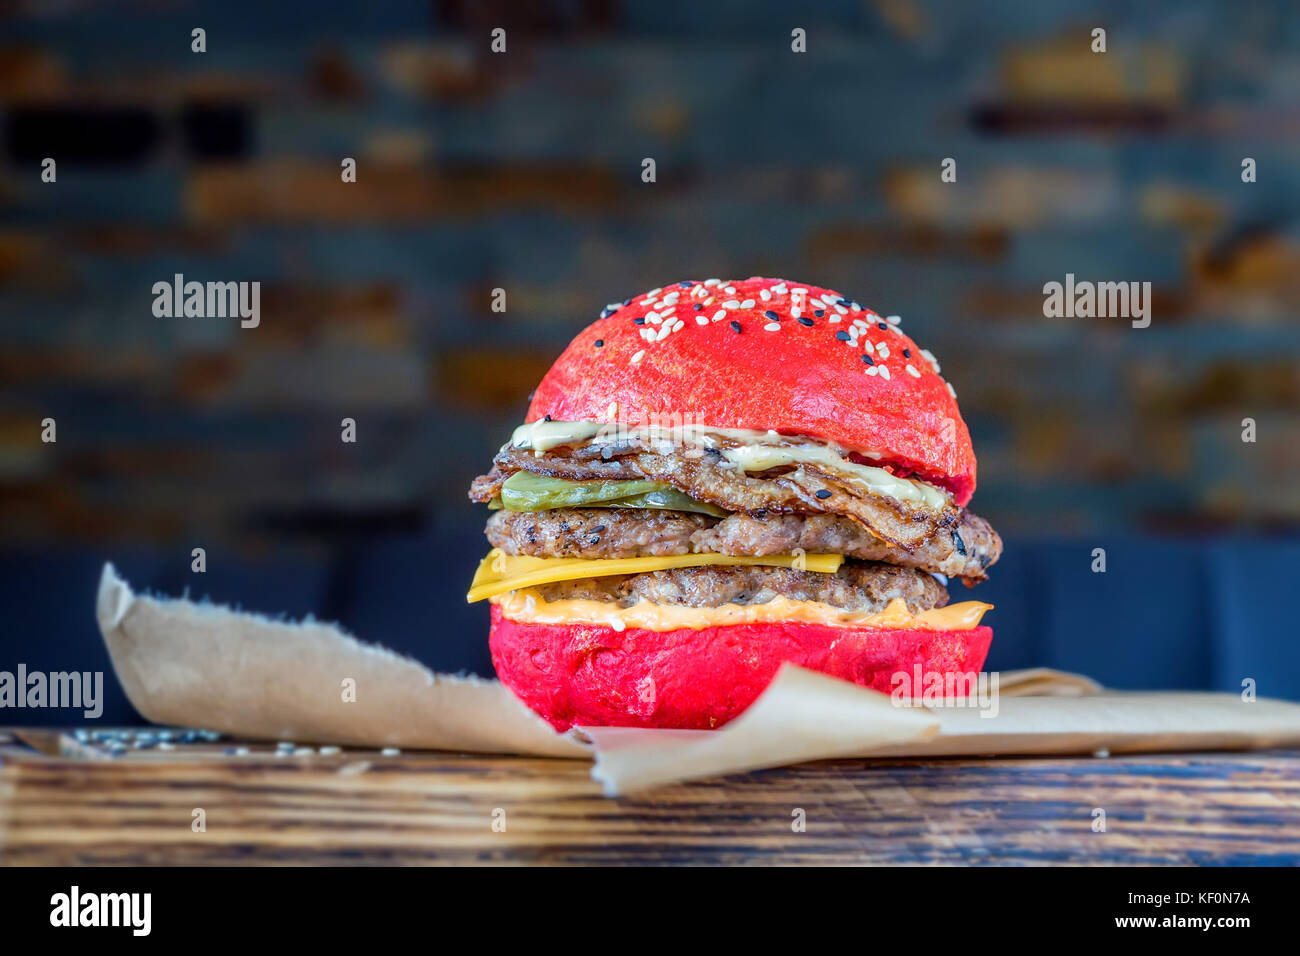 Restaurant burger with red bun on wooden board - Stock Image